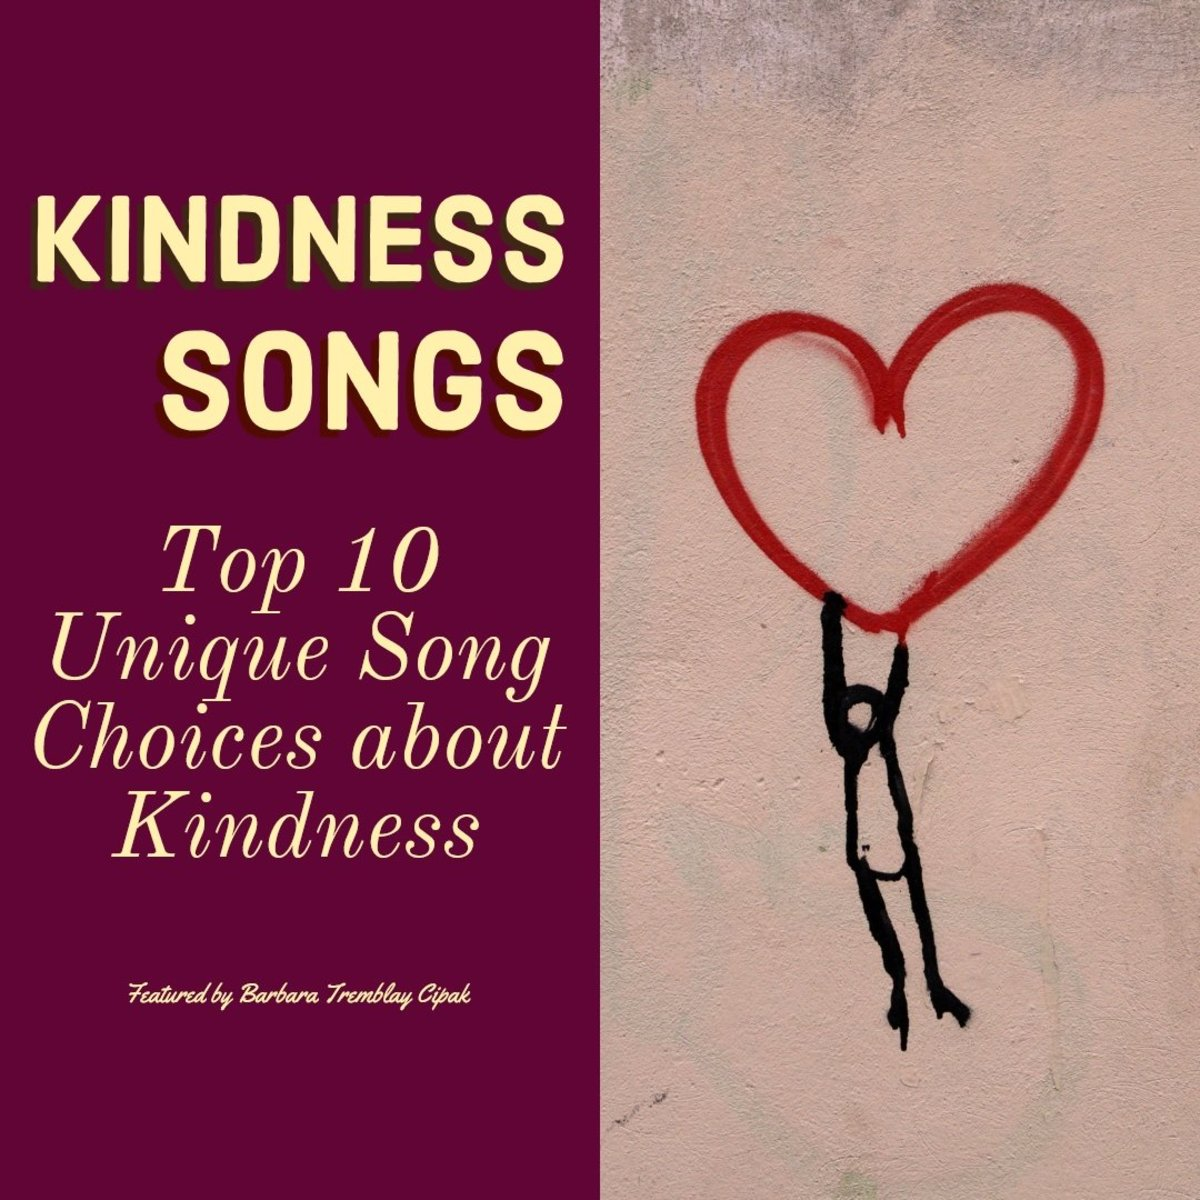 Songs About Kindness | Spinditty